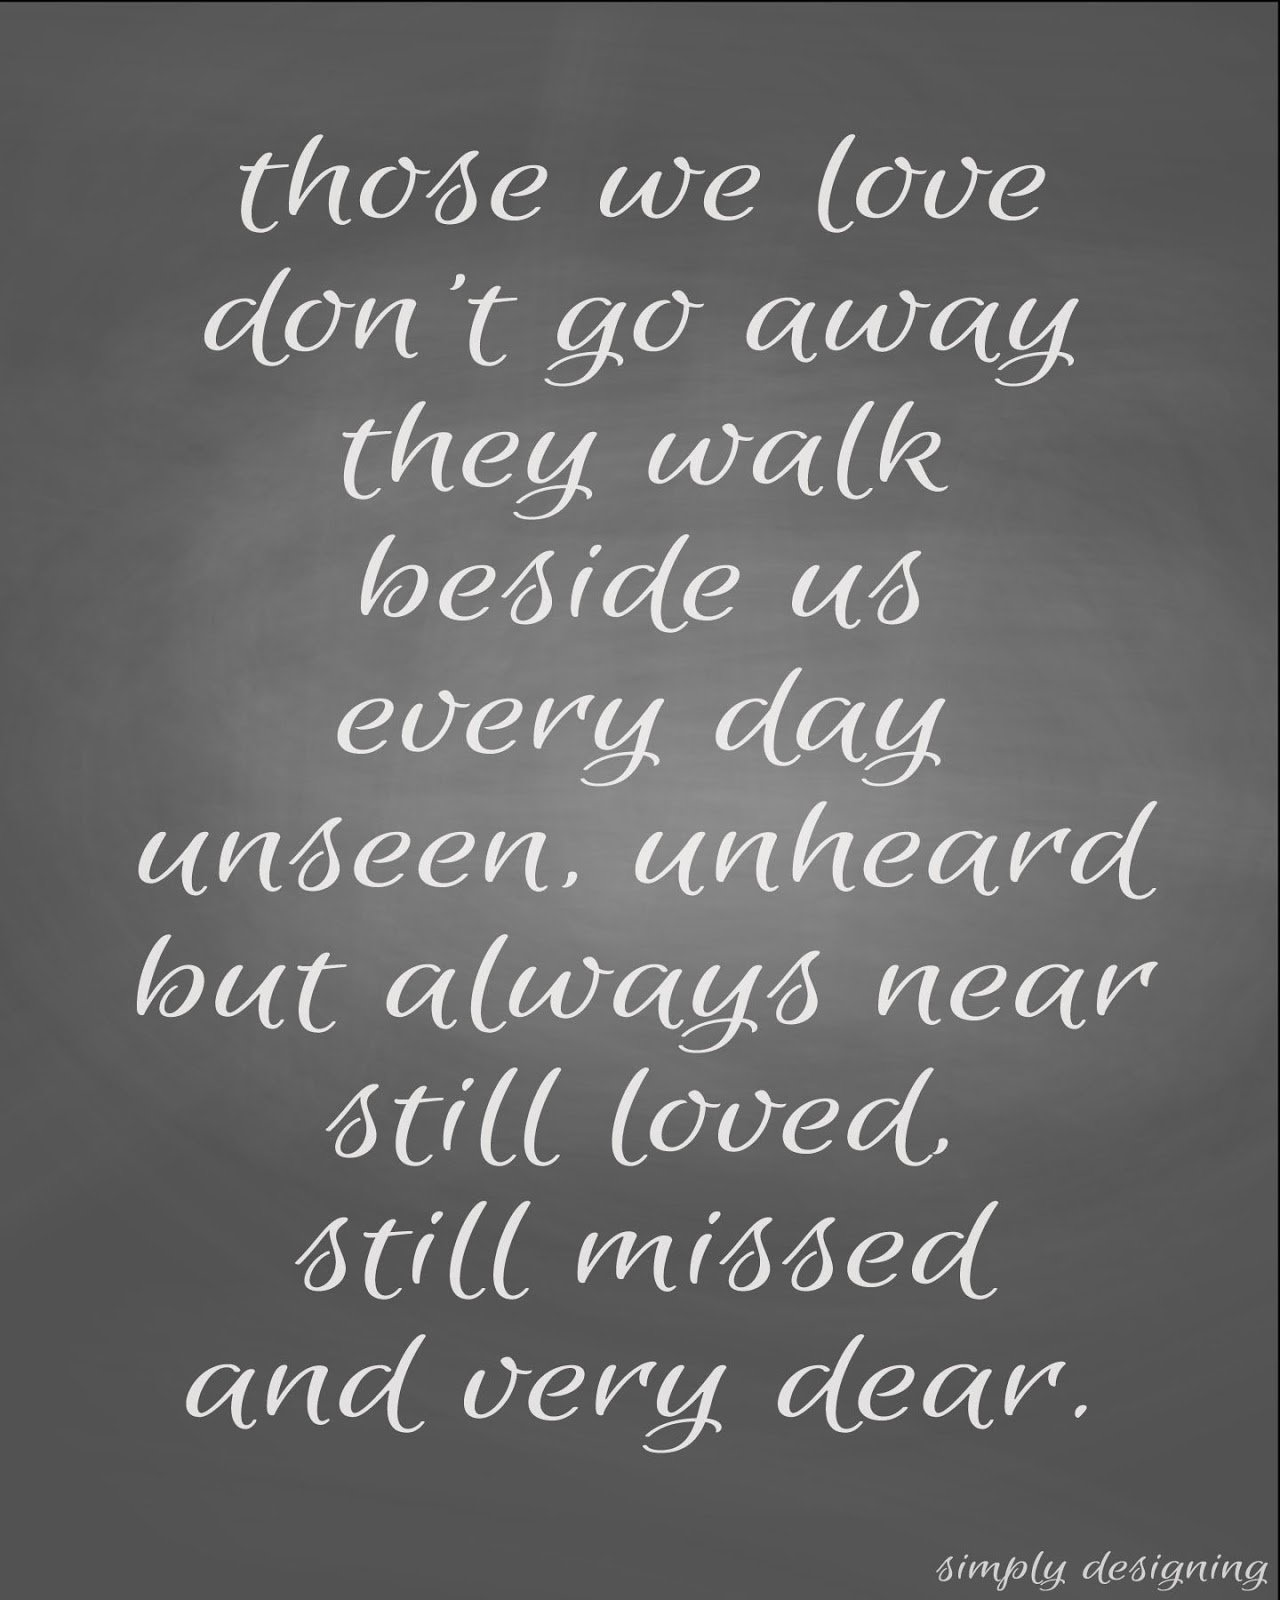 Passed Away Quotes: Quotes About Loved Ones Who Have Passed Away. QuotesGram